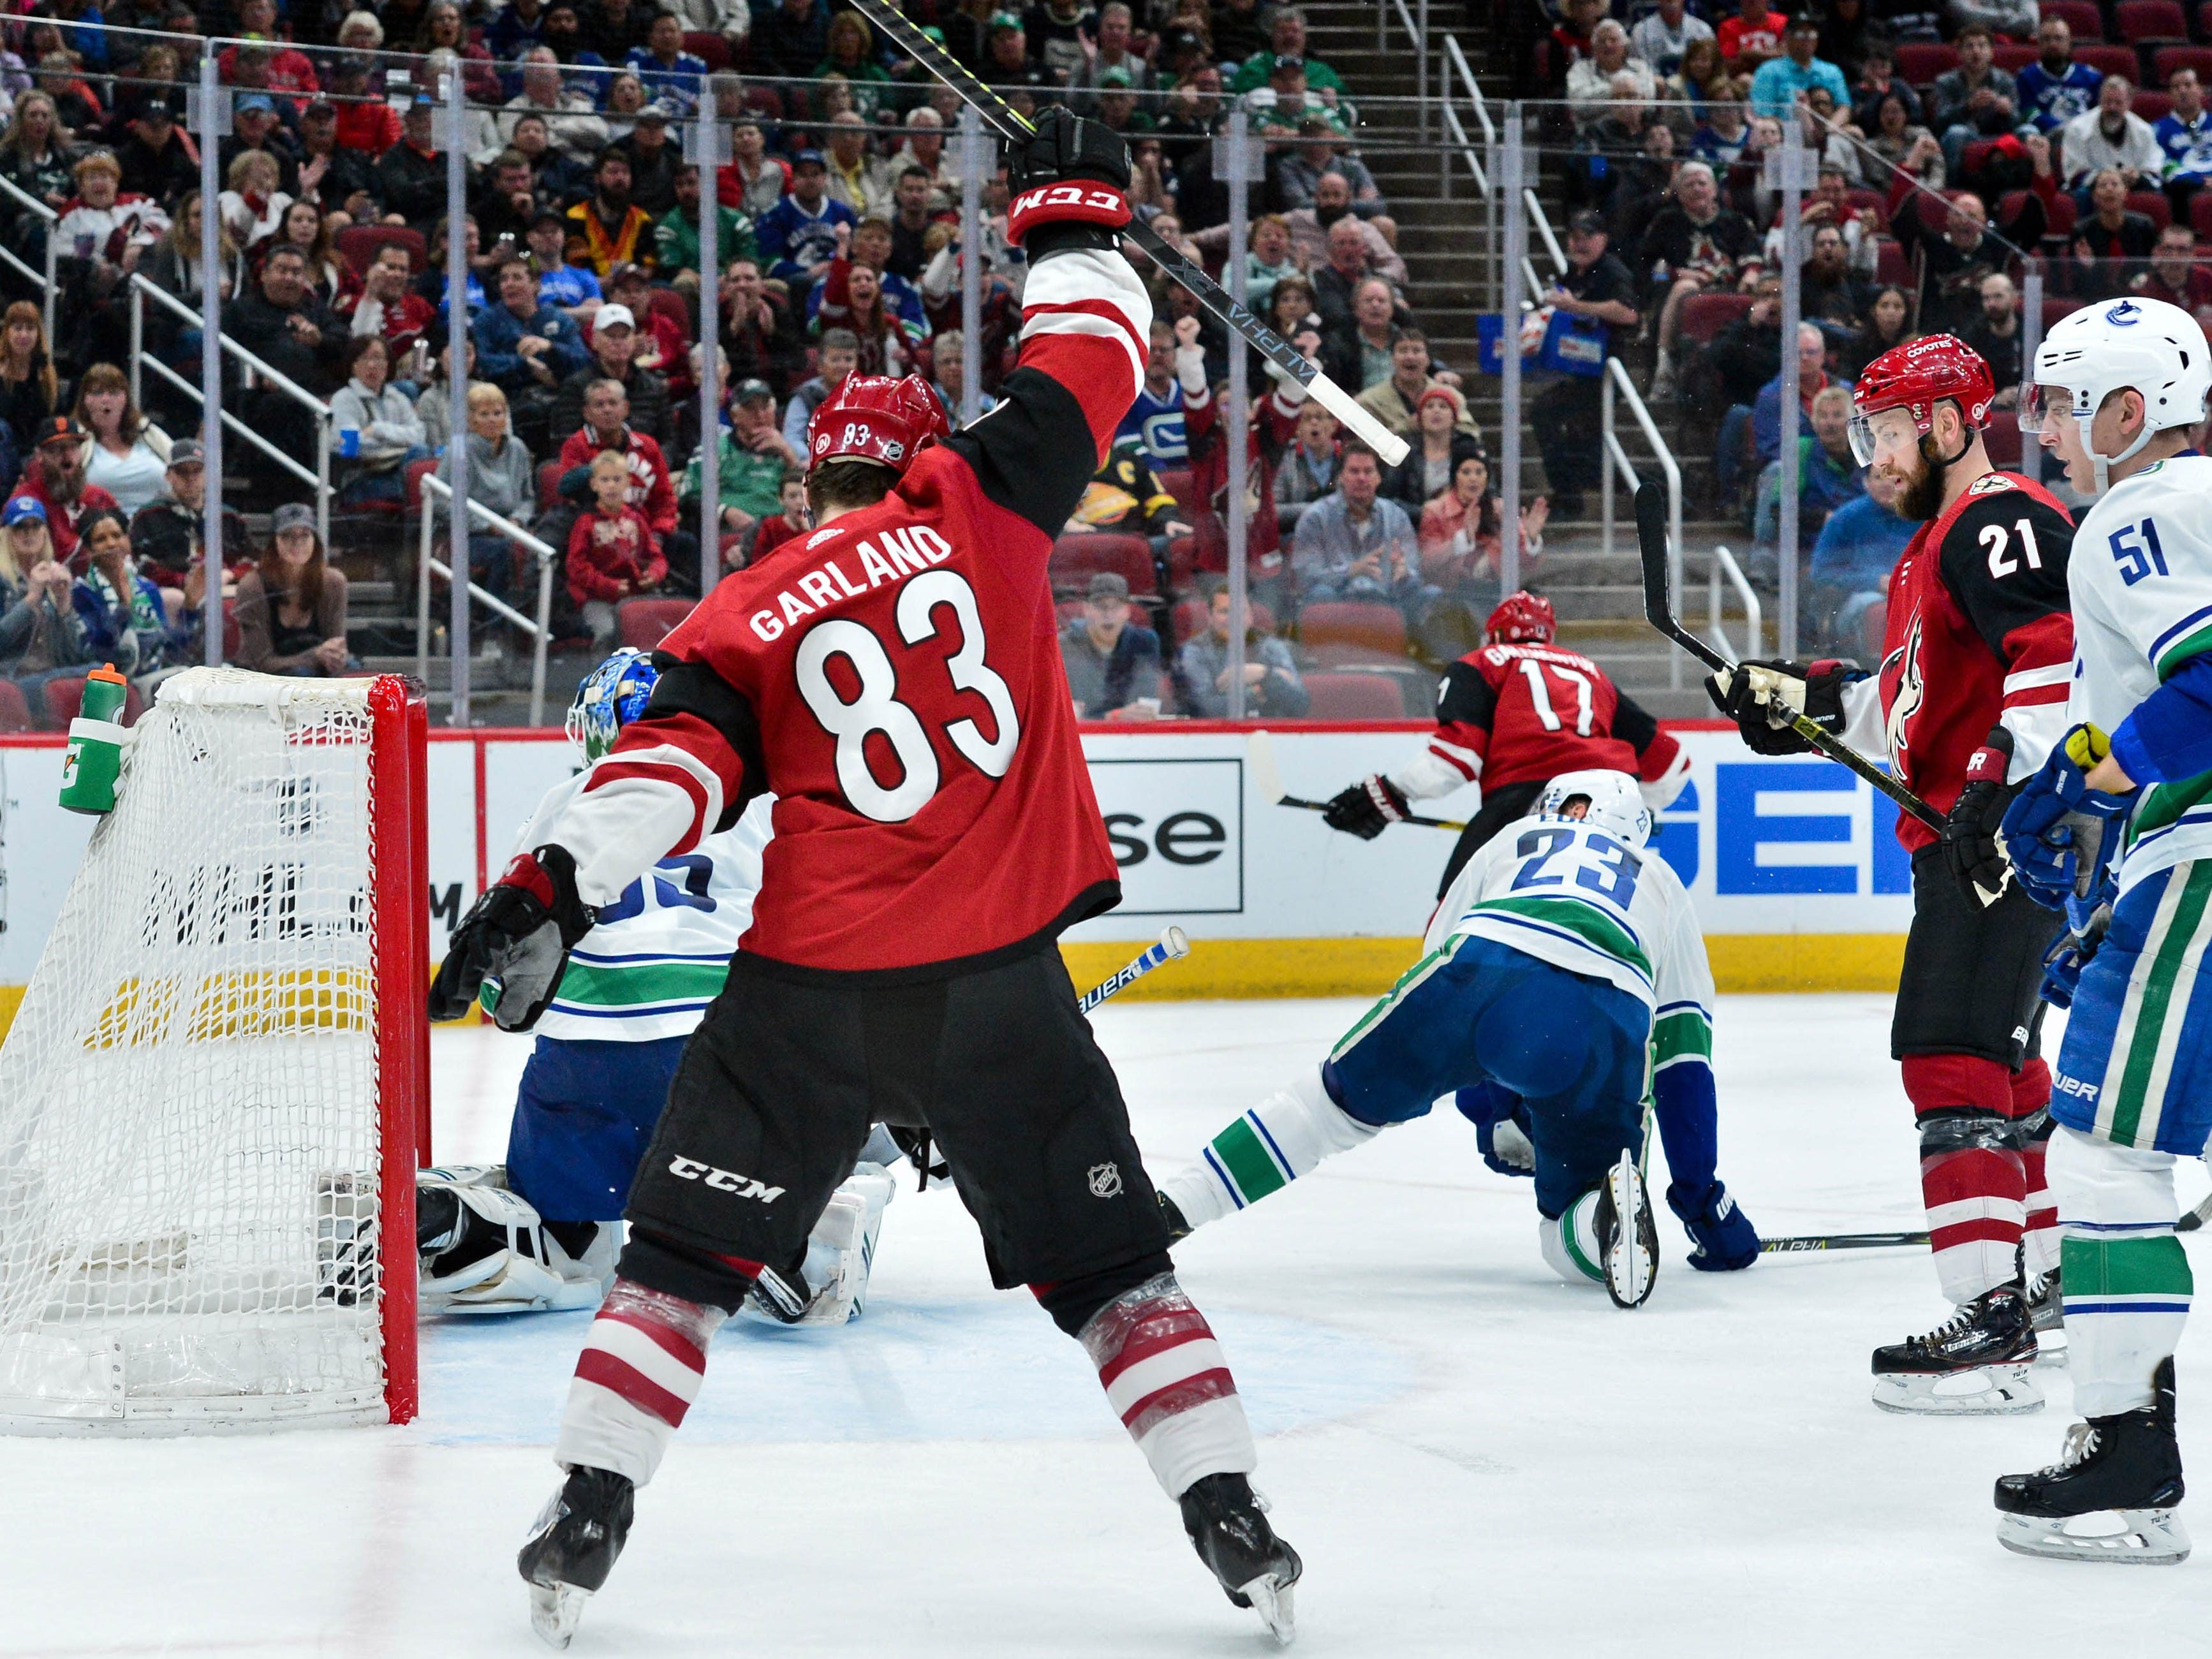 Feb 28, 2019; Glendale, AZ, USA; Arizona Coyotes right wing Conor Garland (83) celebrates a goal by center Alex Galchenyuk (17) during the second period against the Vancouver Canucks at Gila River Arena.